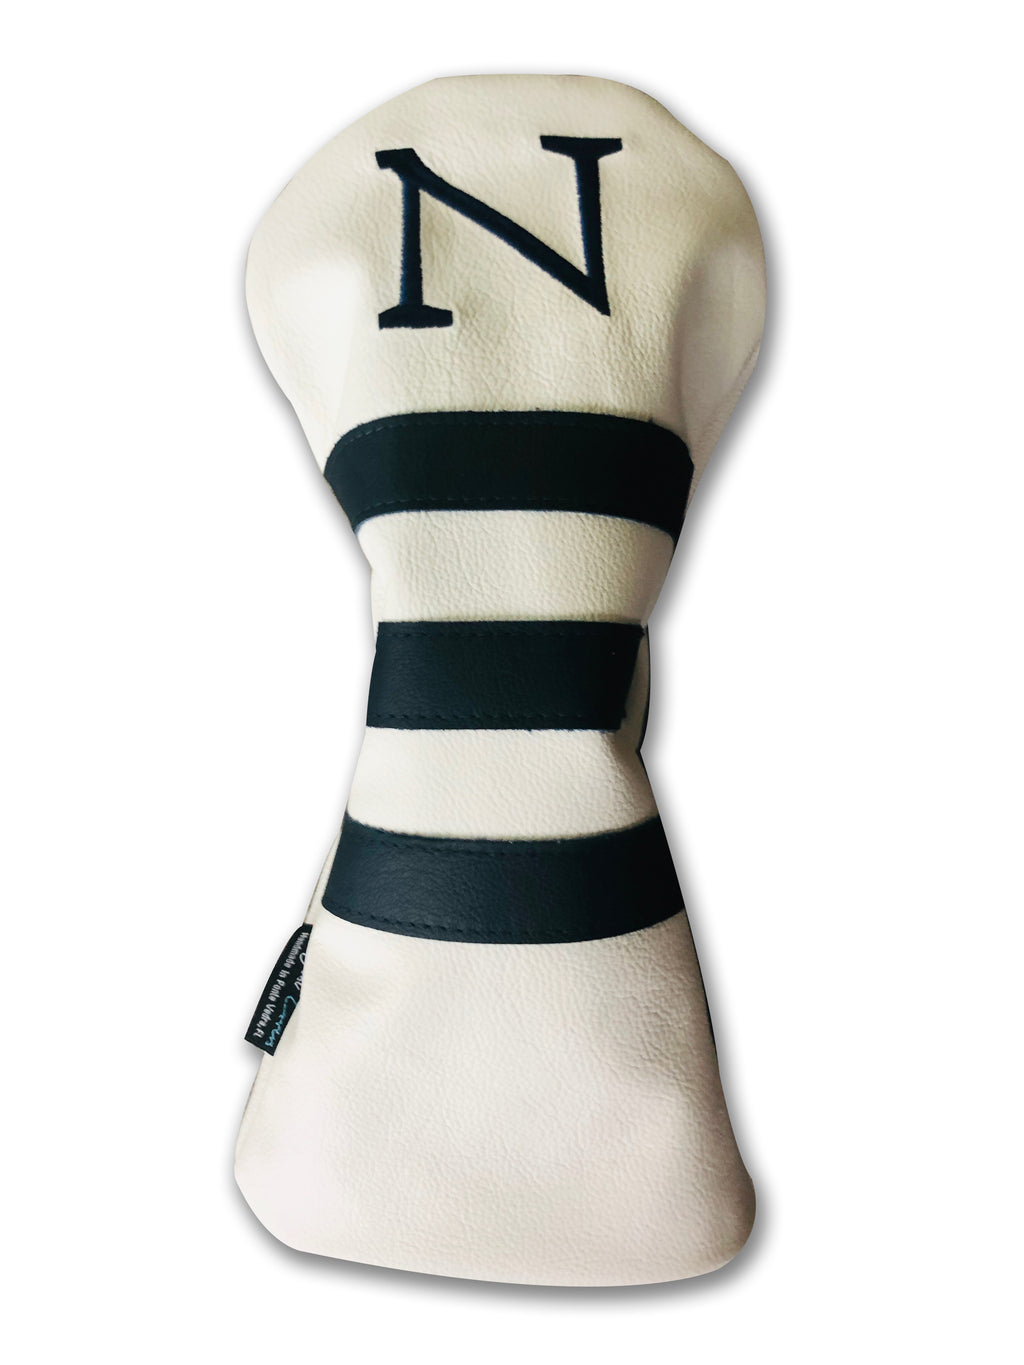 Nocatee Headcover